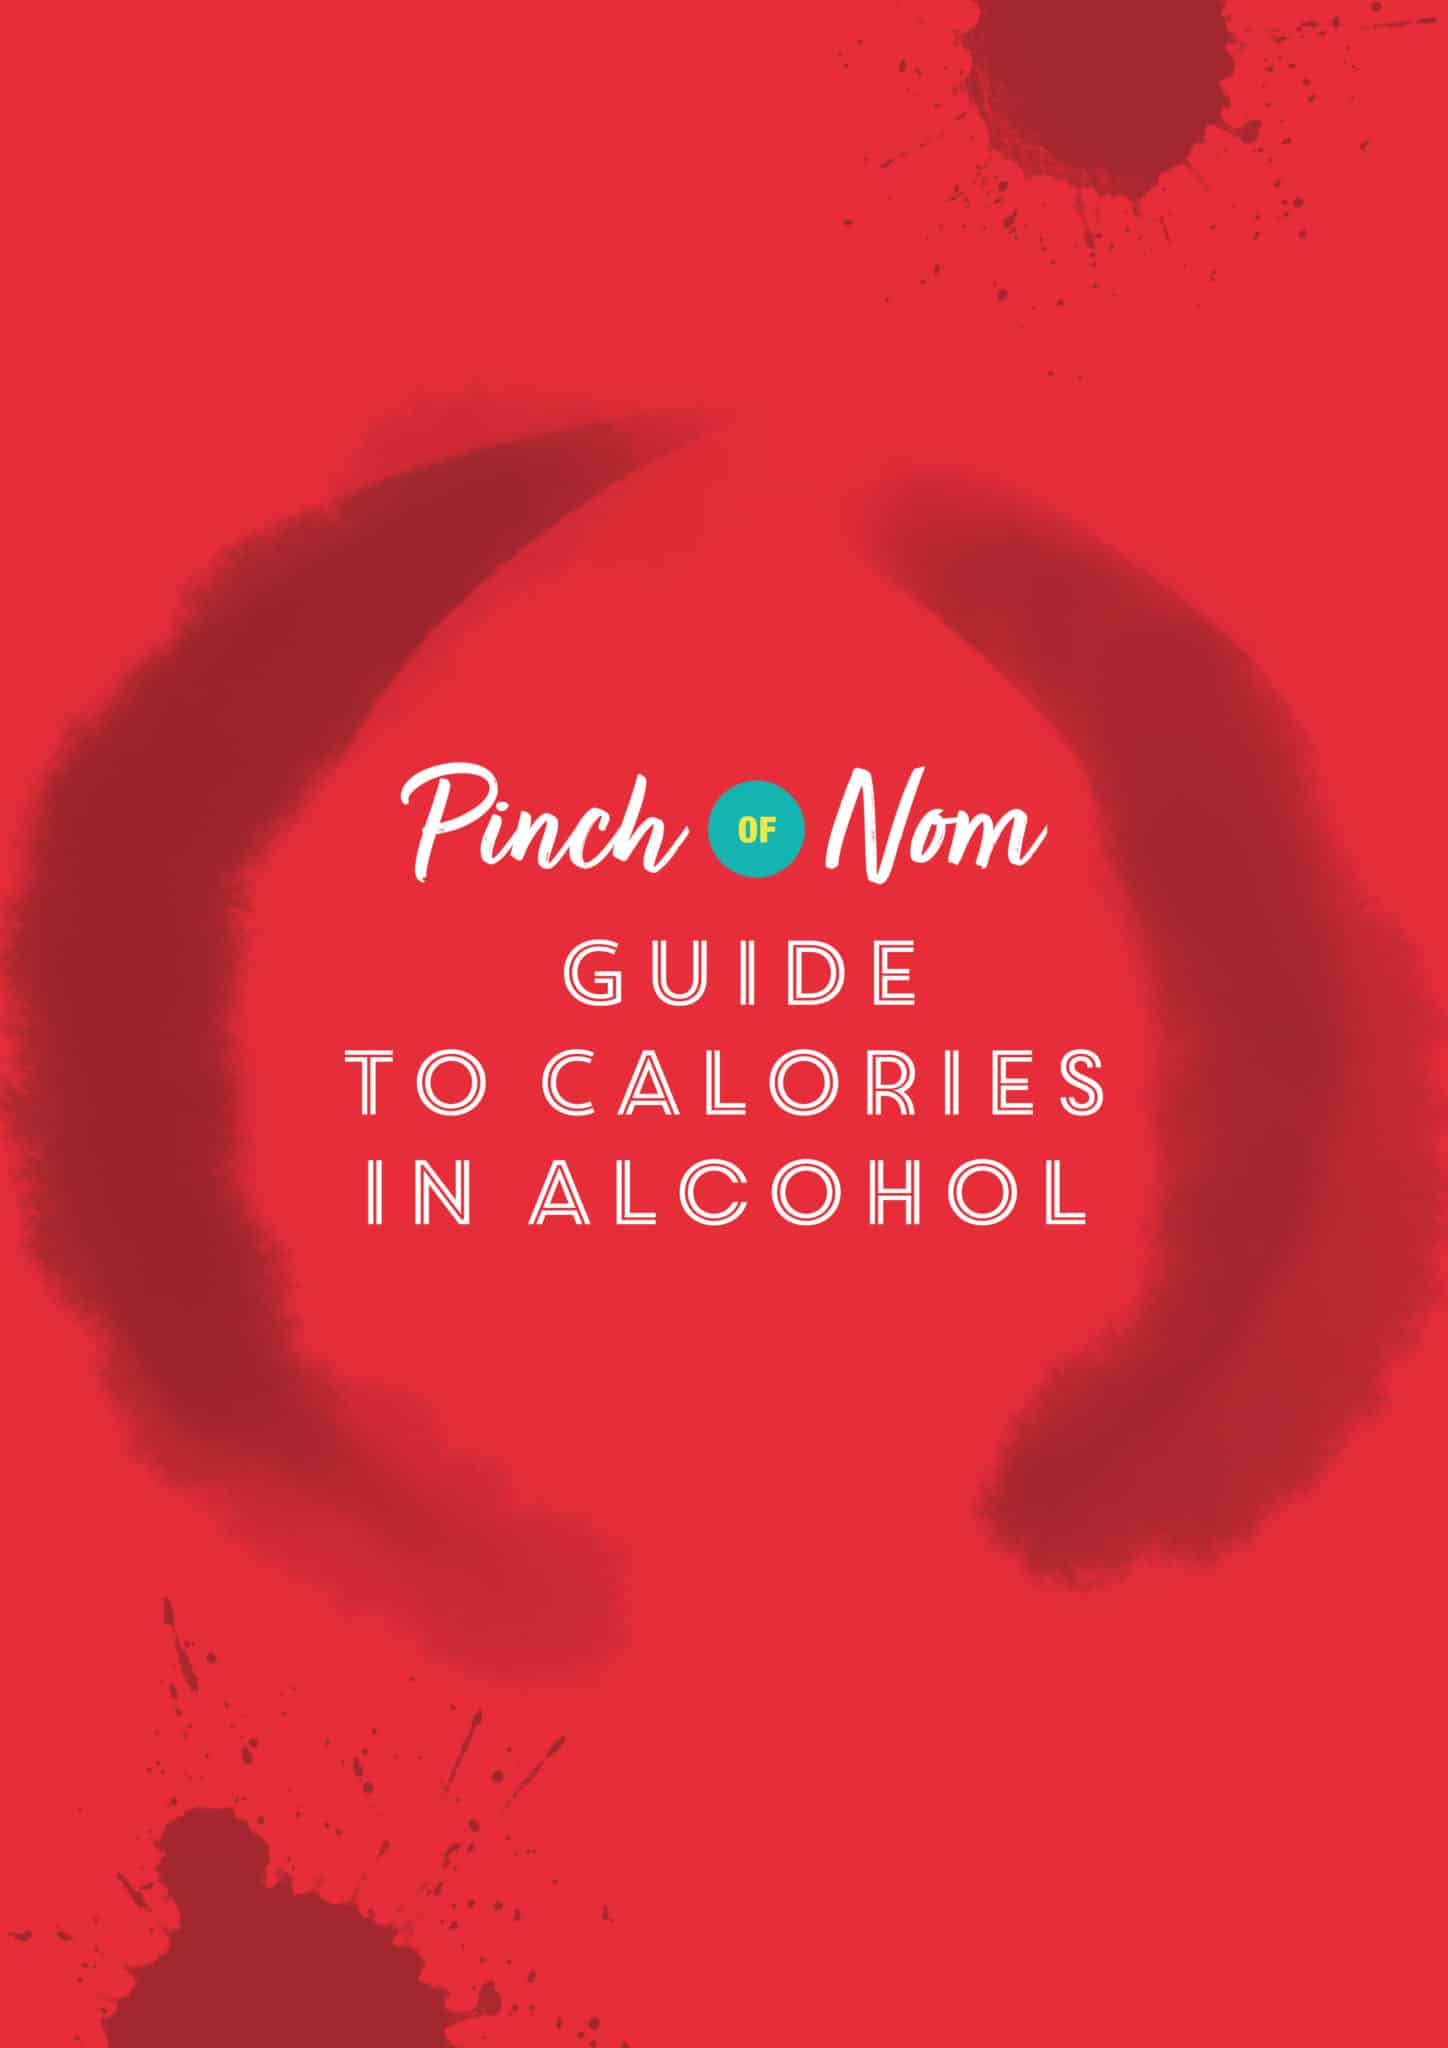 Guide to calories in alcohol | Pinch of Nom Slimming Recipes